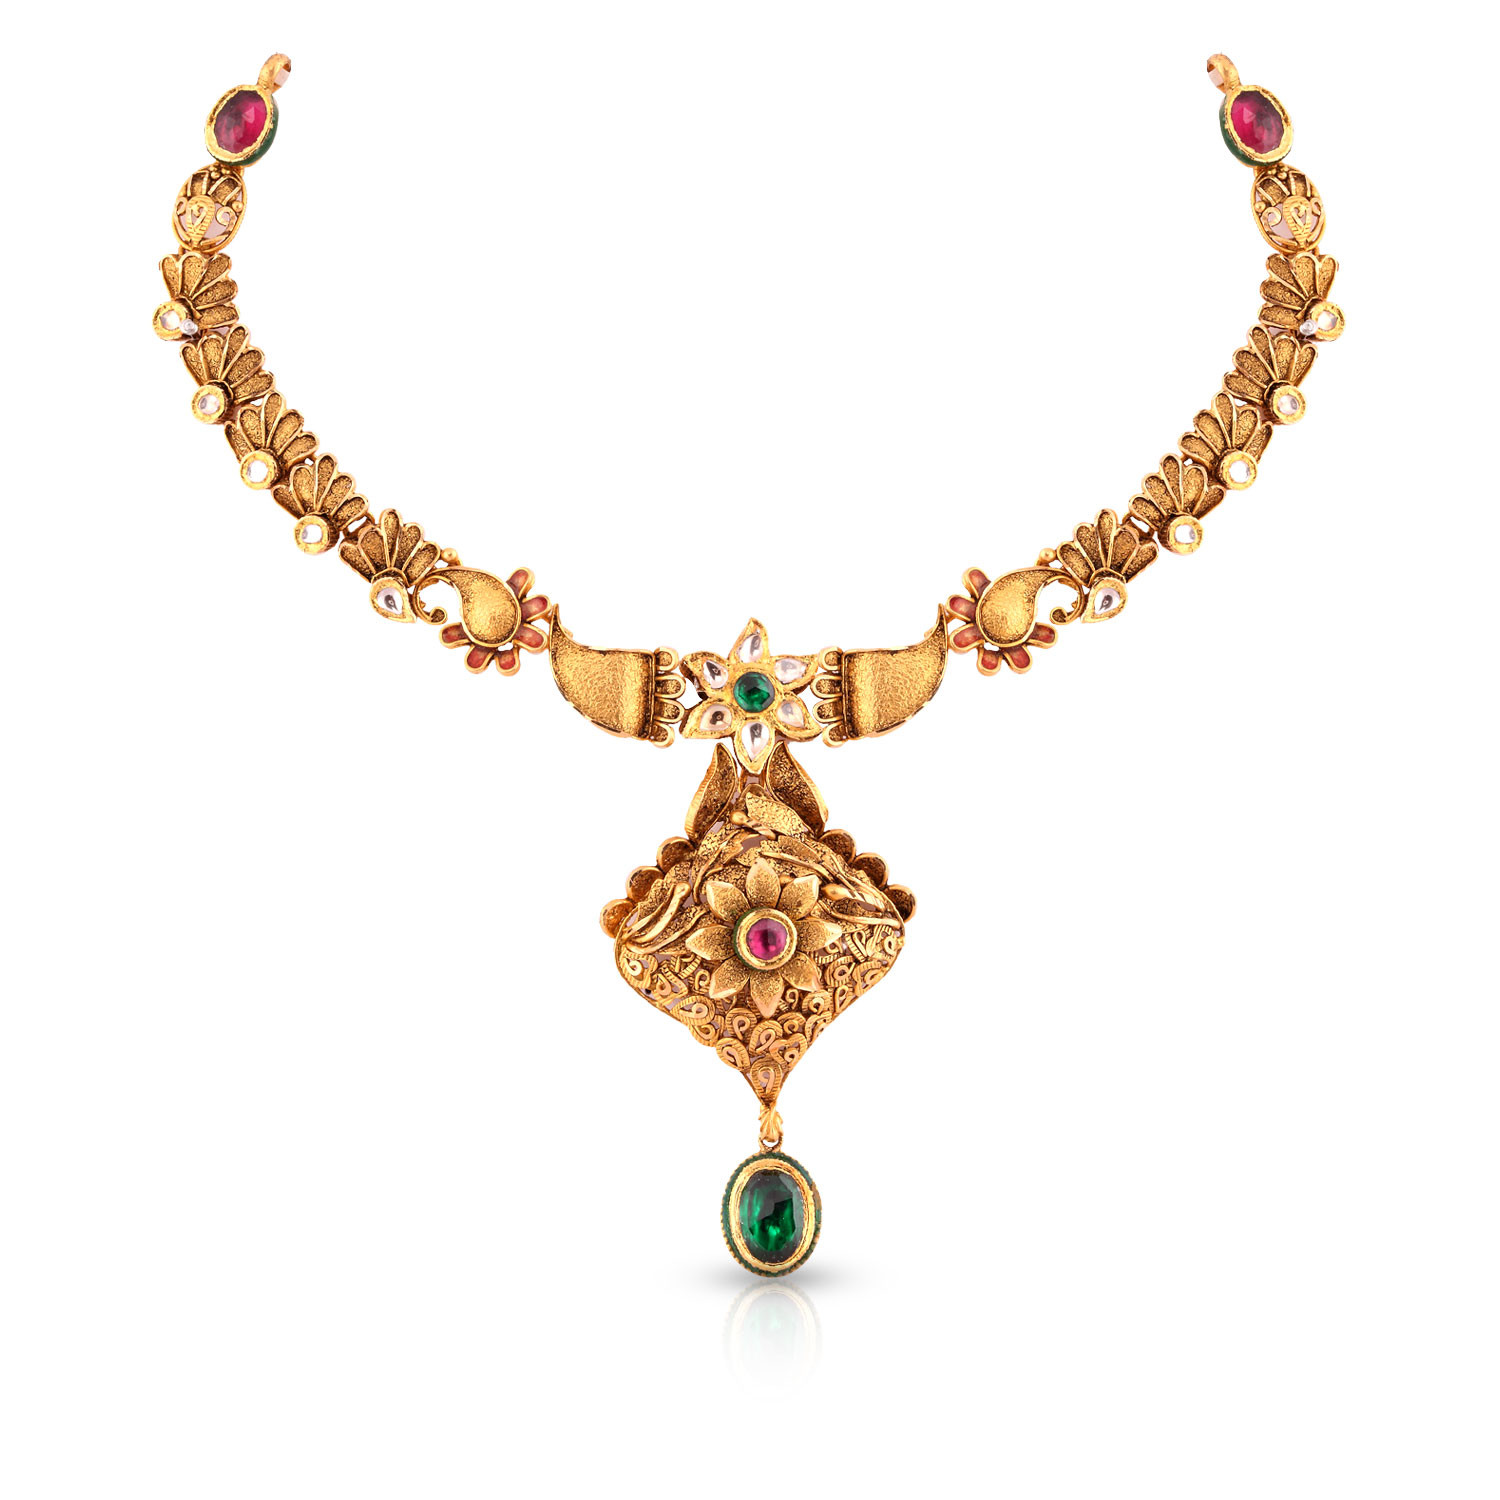 jewelry weight product necklace detail saudi light set arabian gold buy